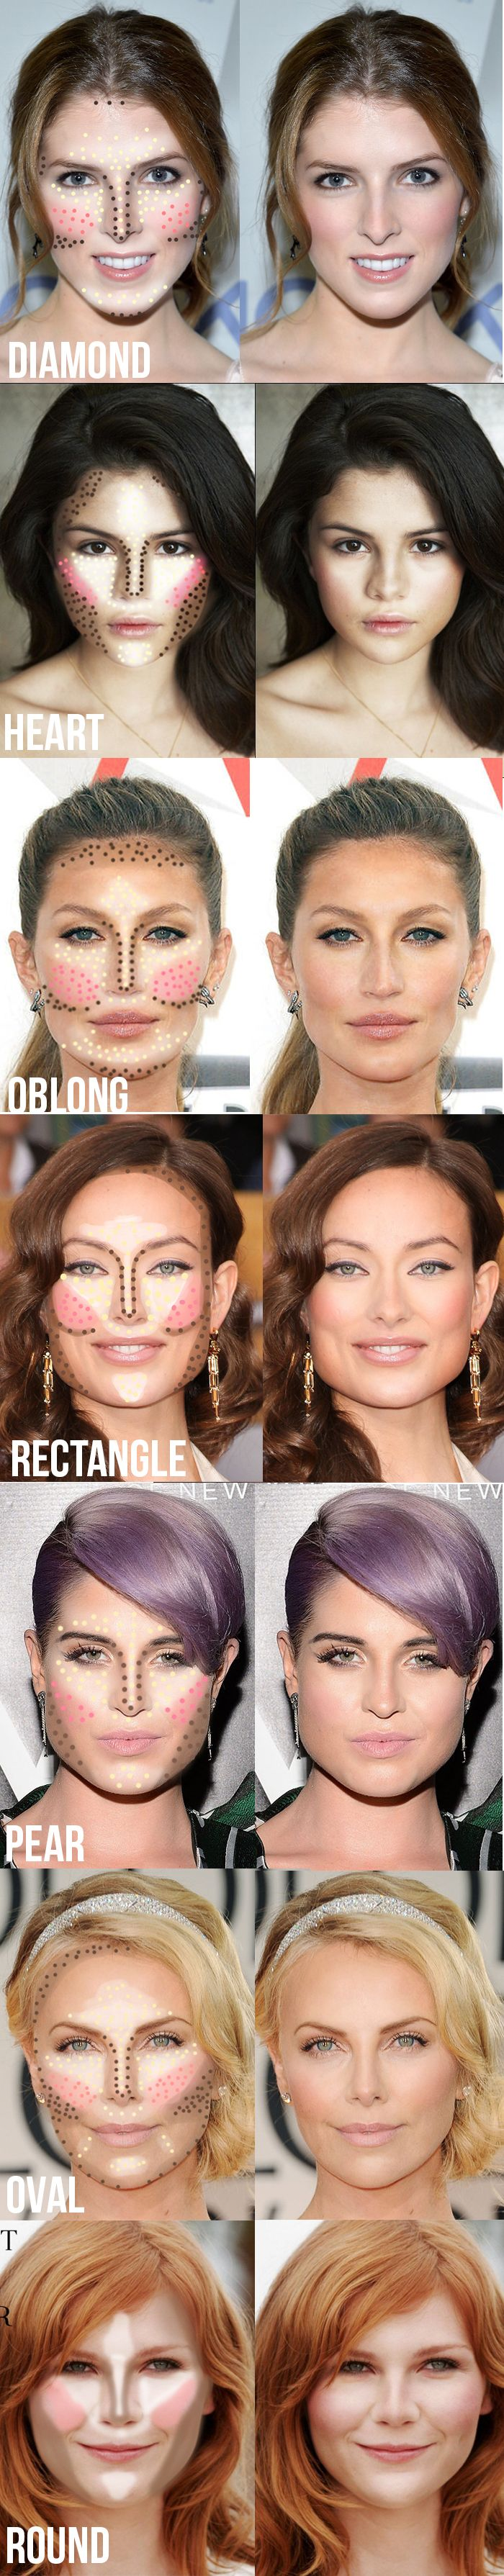 Highlighting and contouring guide for your face shape! It really makes a difference!: Make Up, How To Contour, Beauty Makeup, Face Shapes, Makeup Tips, Makeuptips, Make A Difference, Contouring Guide